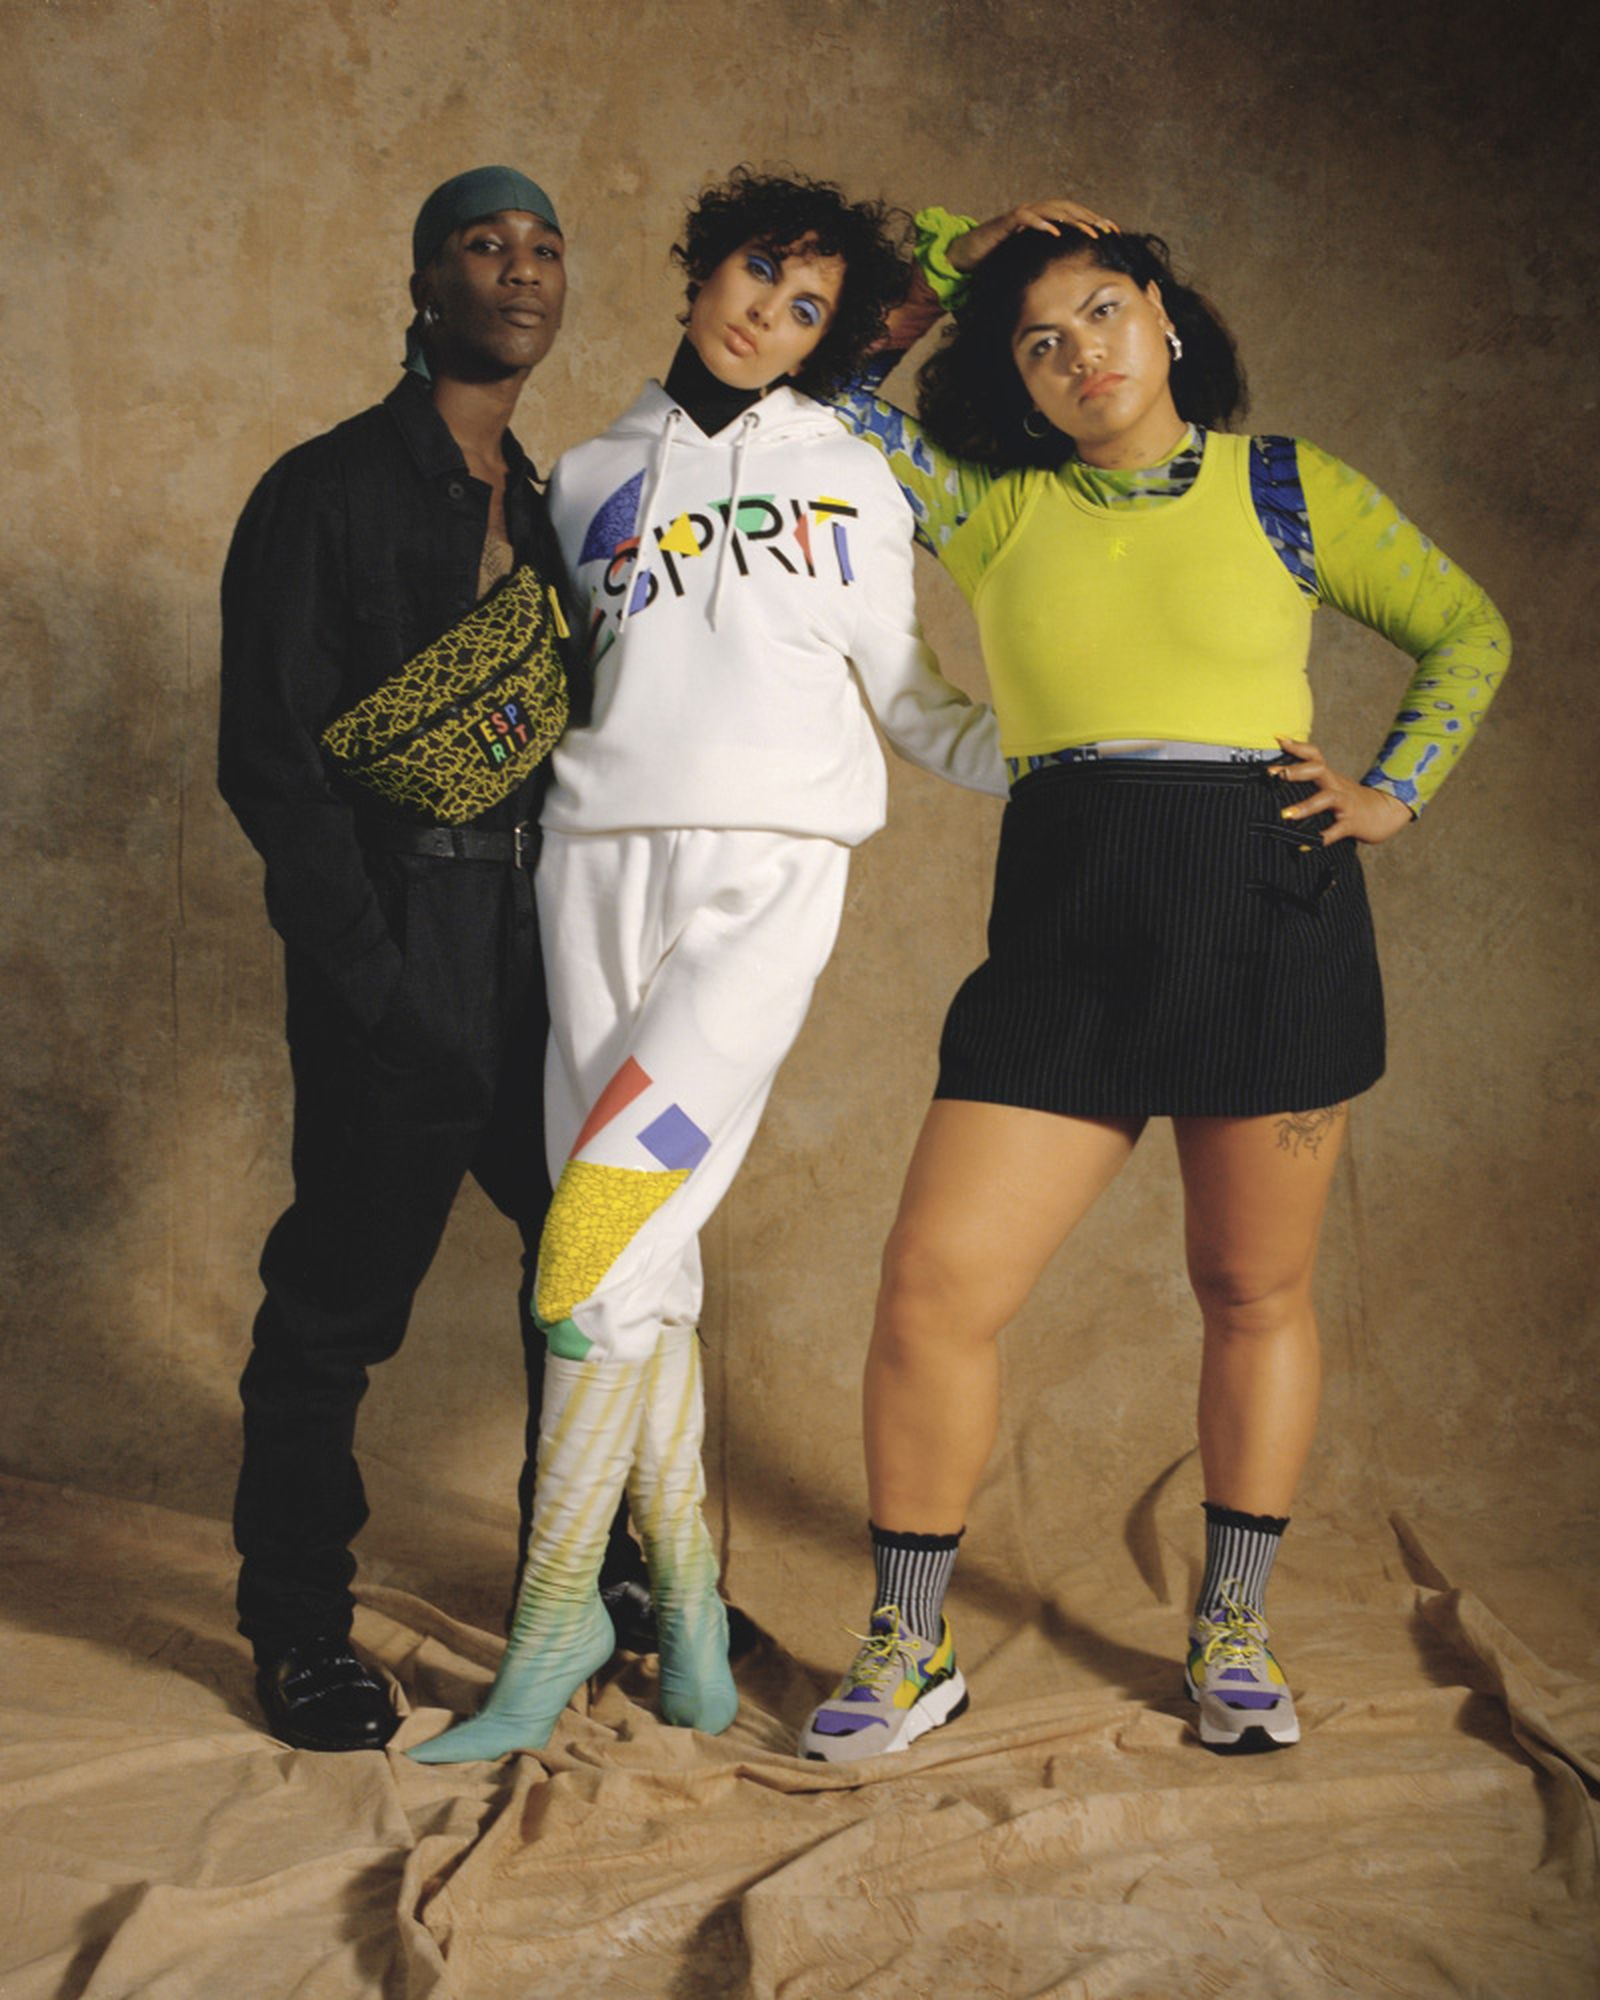 esprit-championed-inclusivity-conscious-style-long-everyone-else-heres-7